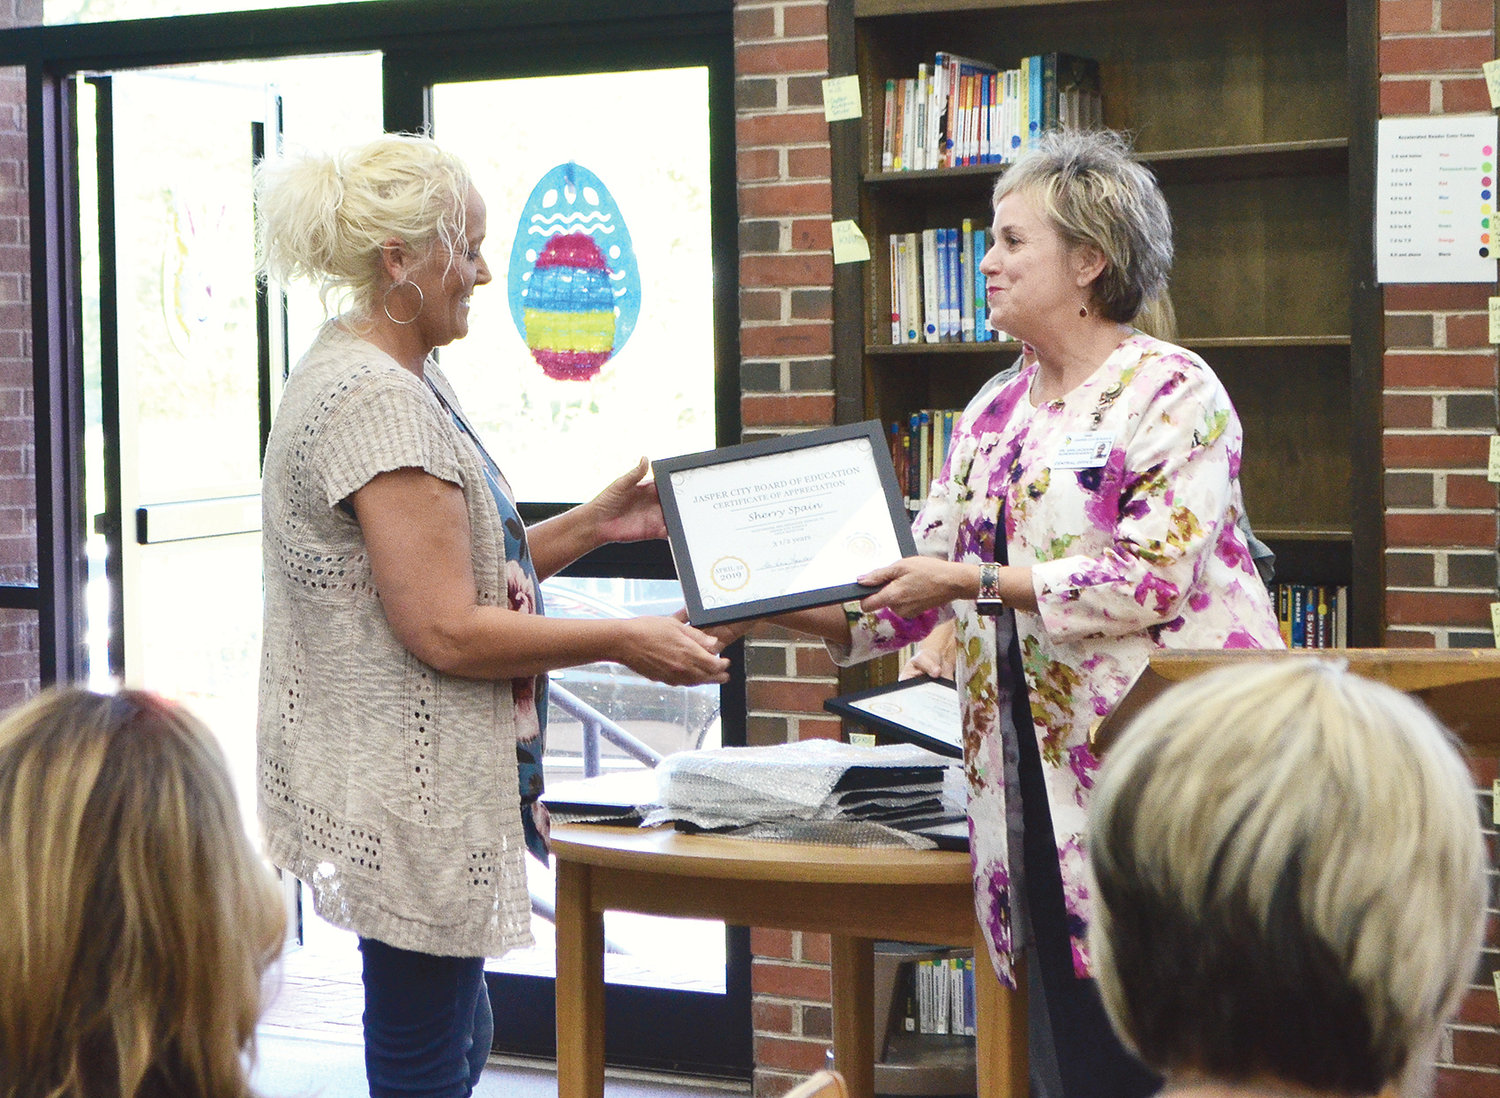 Sherry Spain of Memorial Park Elementary School was honored for three and a half years of service in the CNP program.